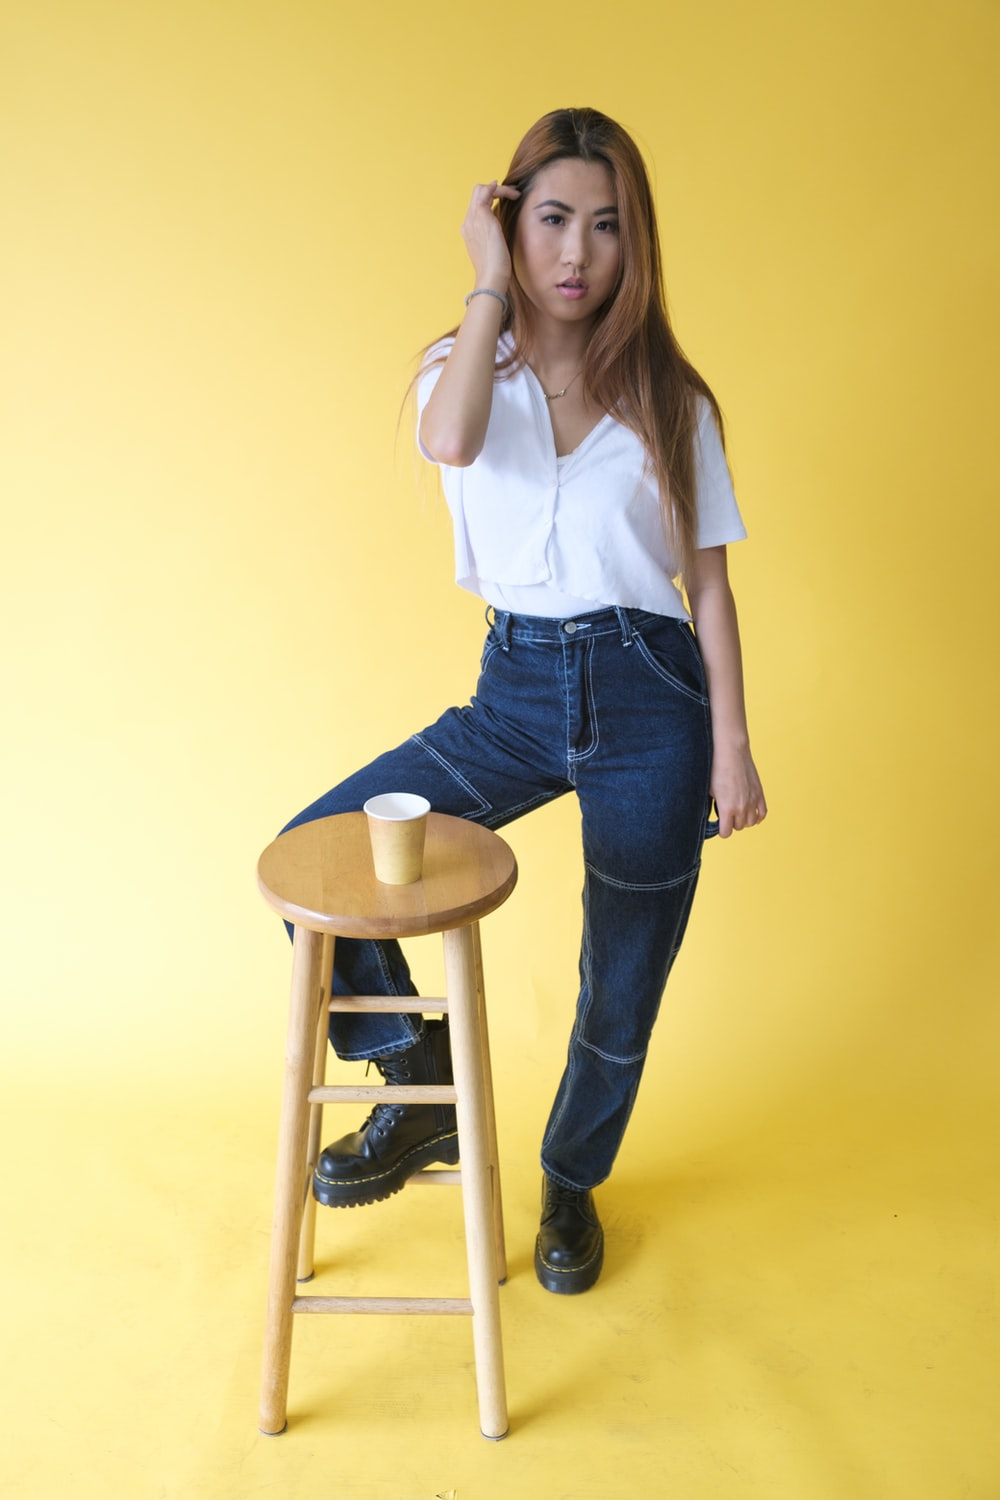 woman in white shirt and blue denim jeans standing beside brown wooden stool